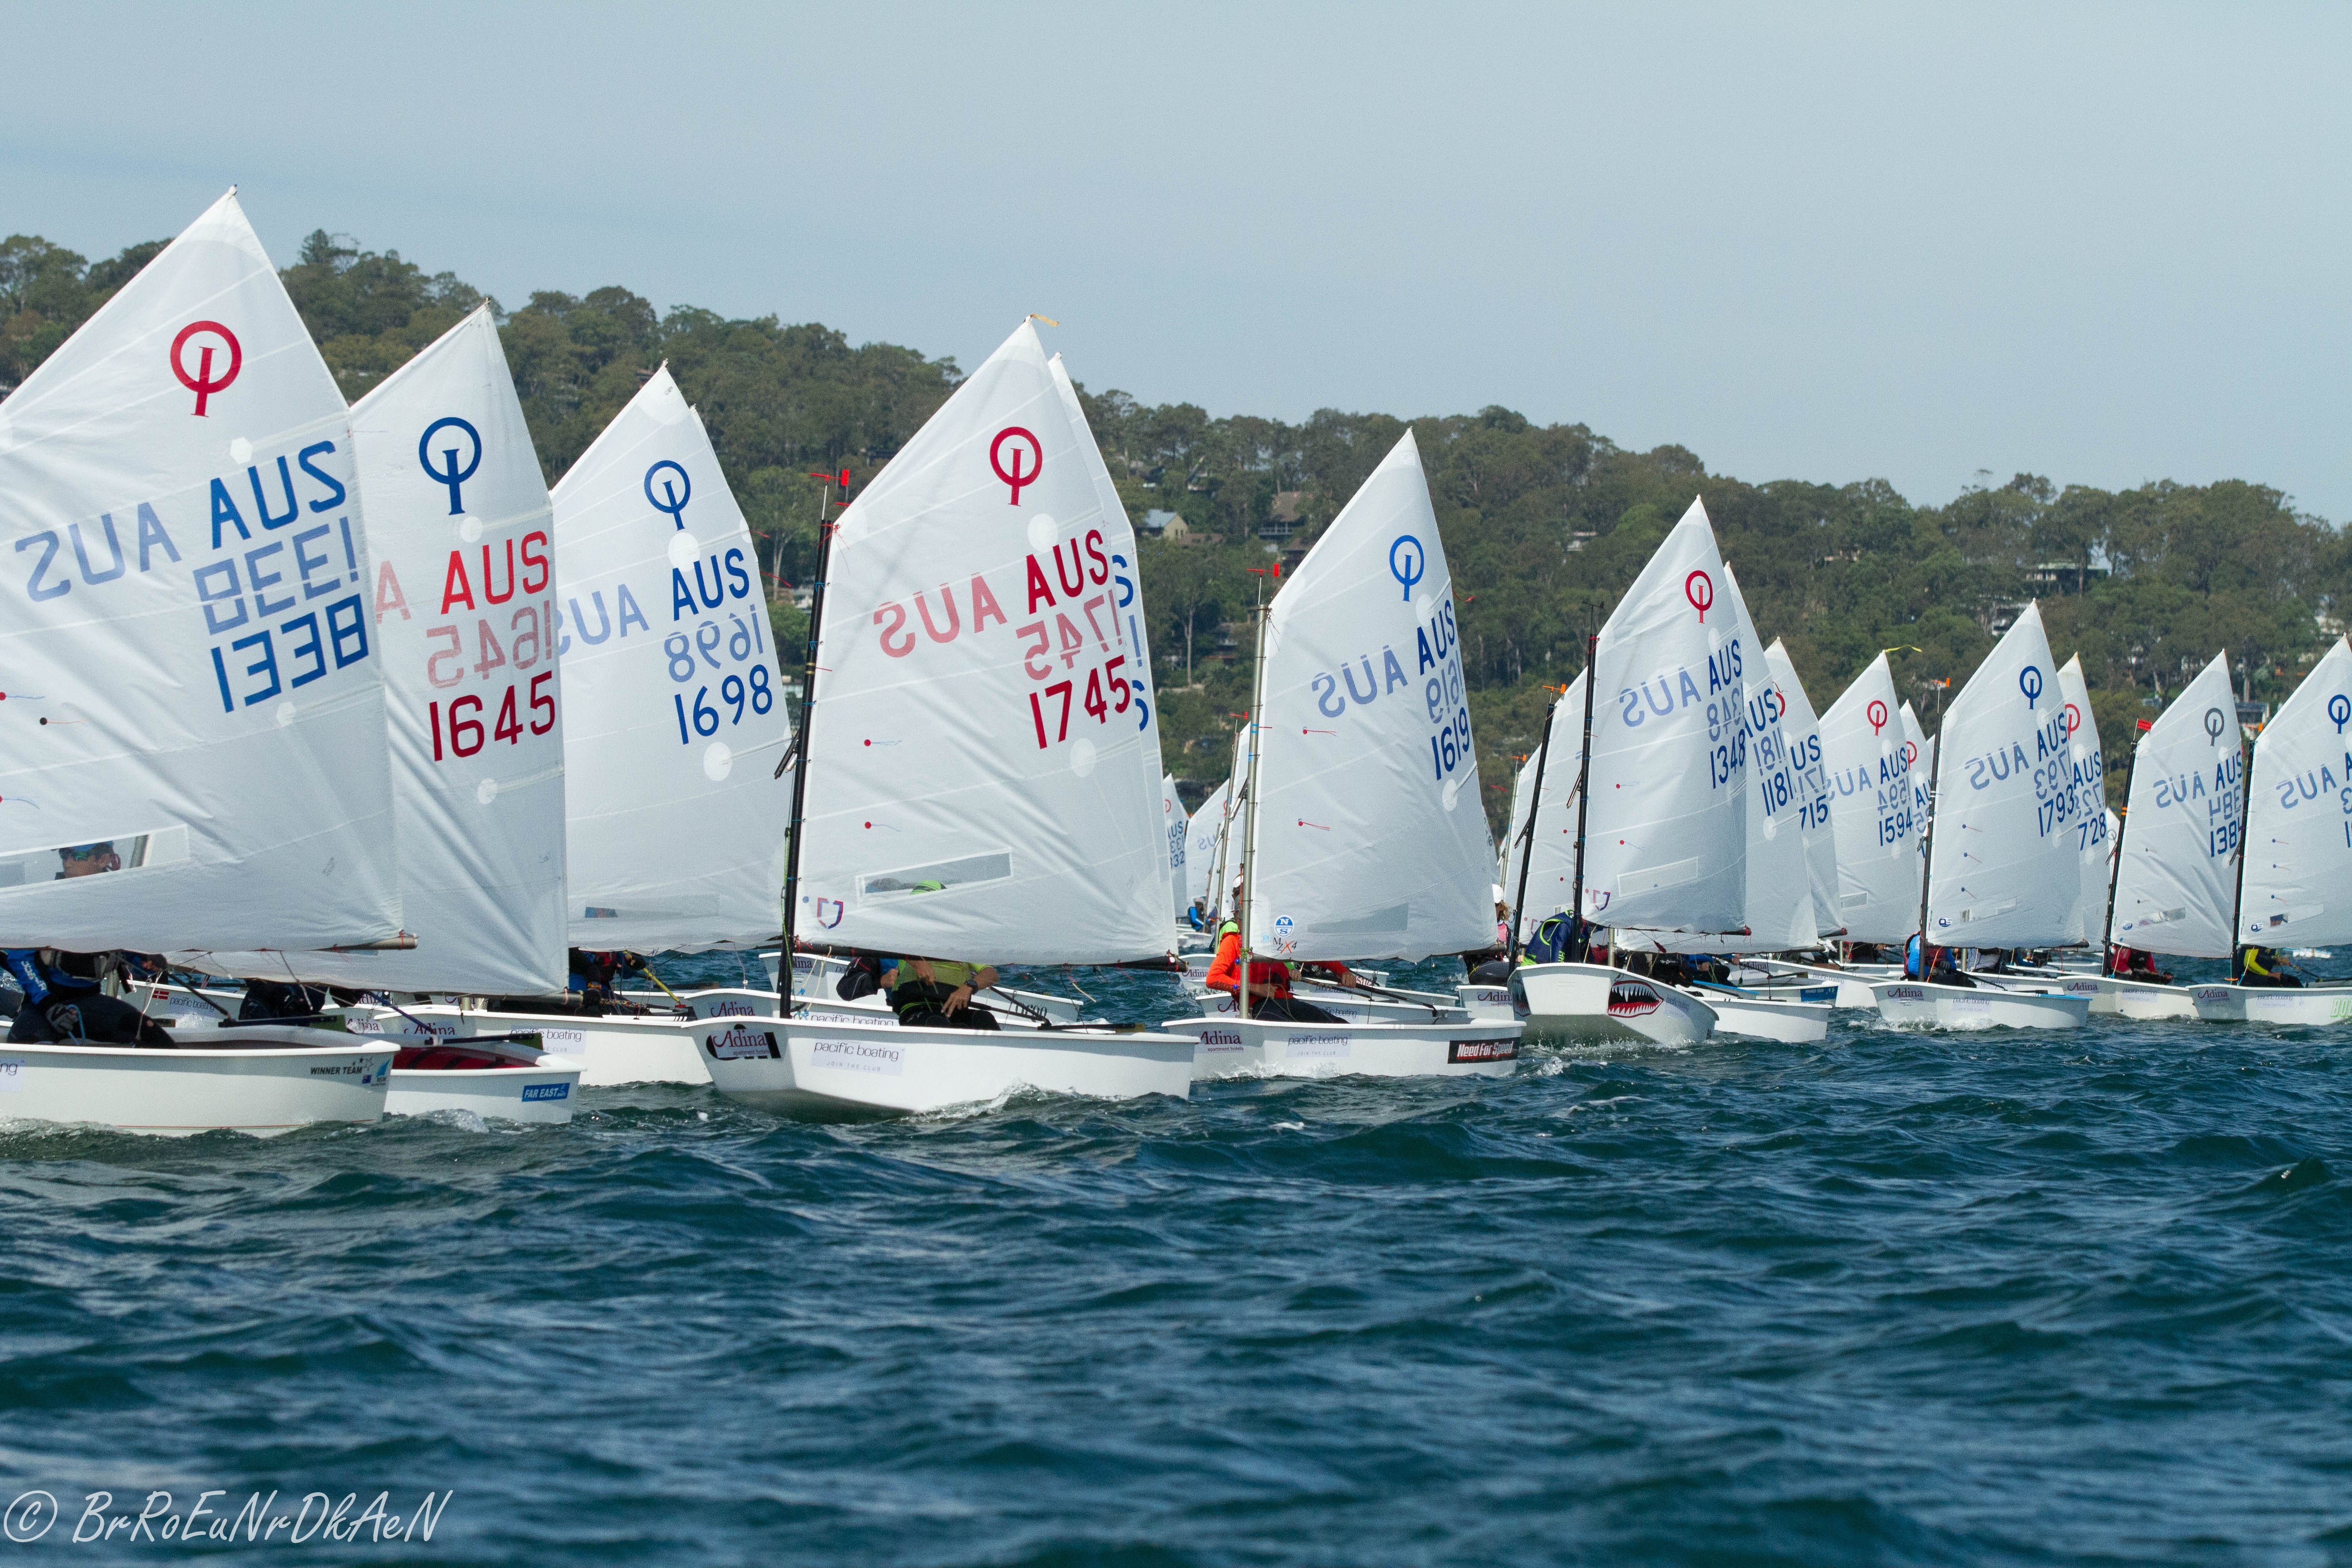 2018 Pacific Boating NSW & Open Optimist Class Championship - Credit Brendan Rourke